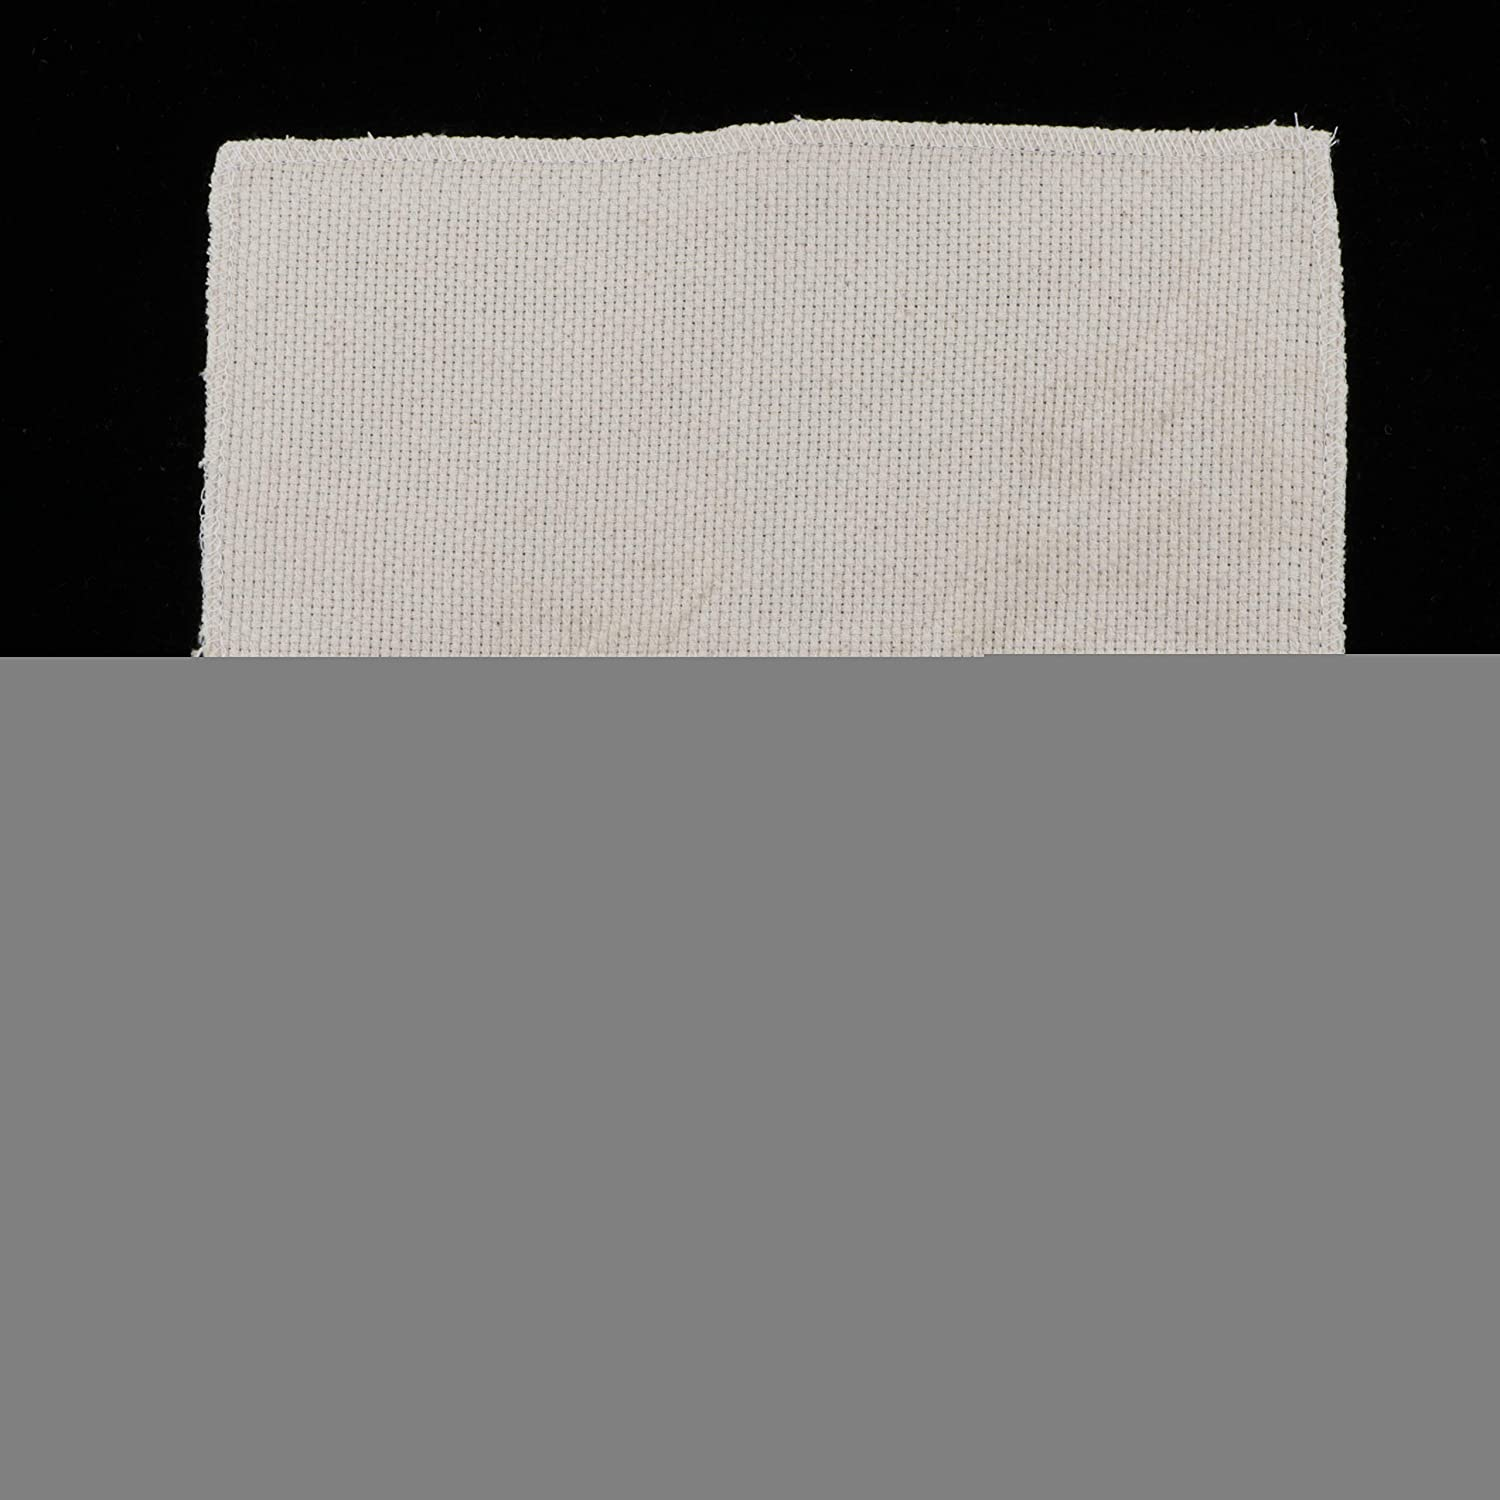 28x28cm dailymall White Cross Stitch Fabric Aida Cloth for DIY Embroidery Needlework Fabric Sewing Punch Needle Embroidery Accessory Handmade Gift